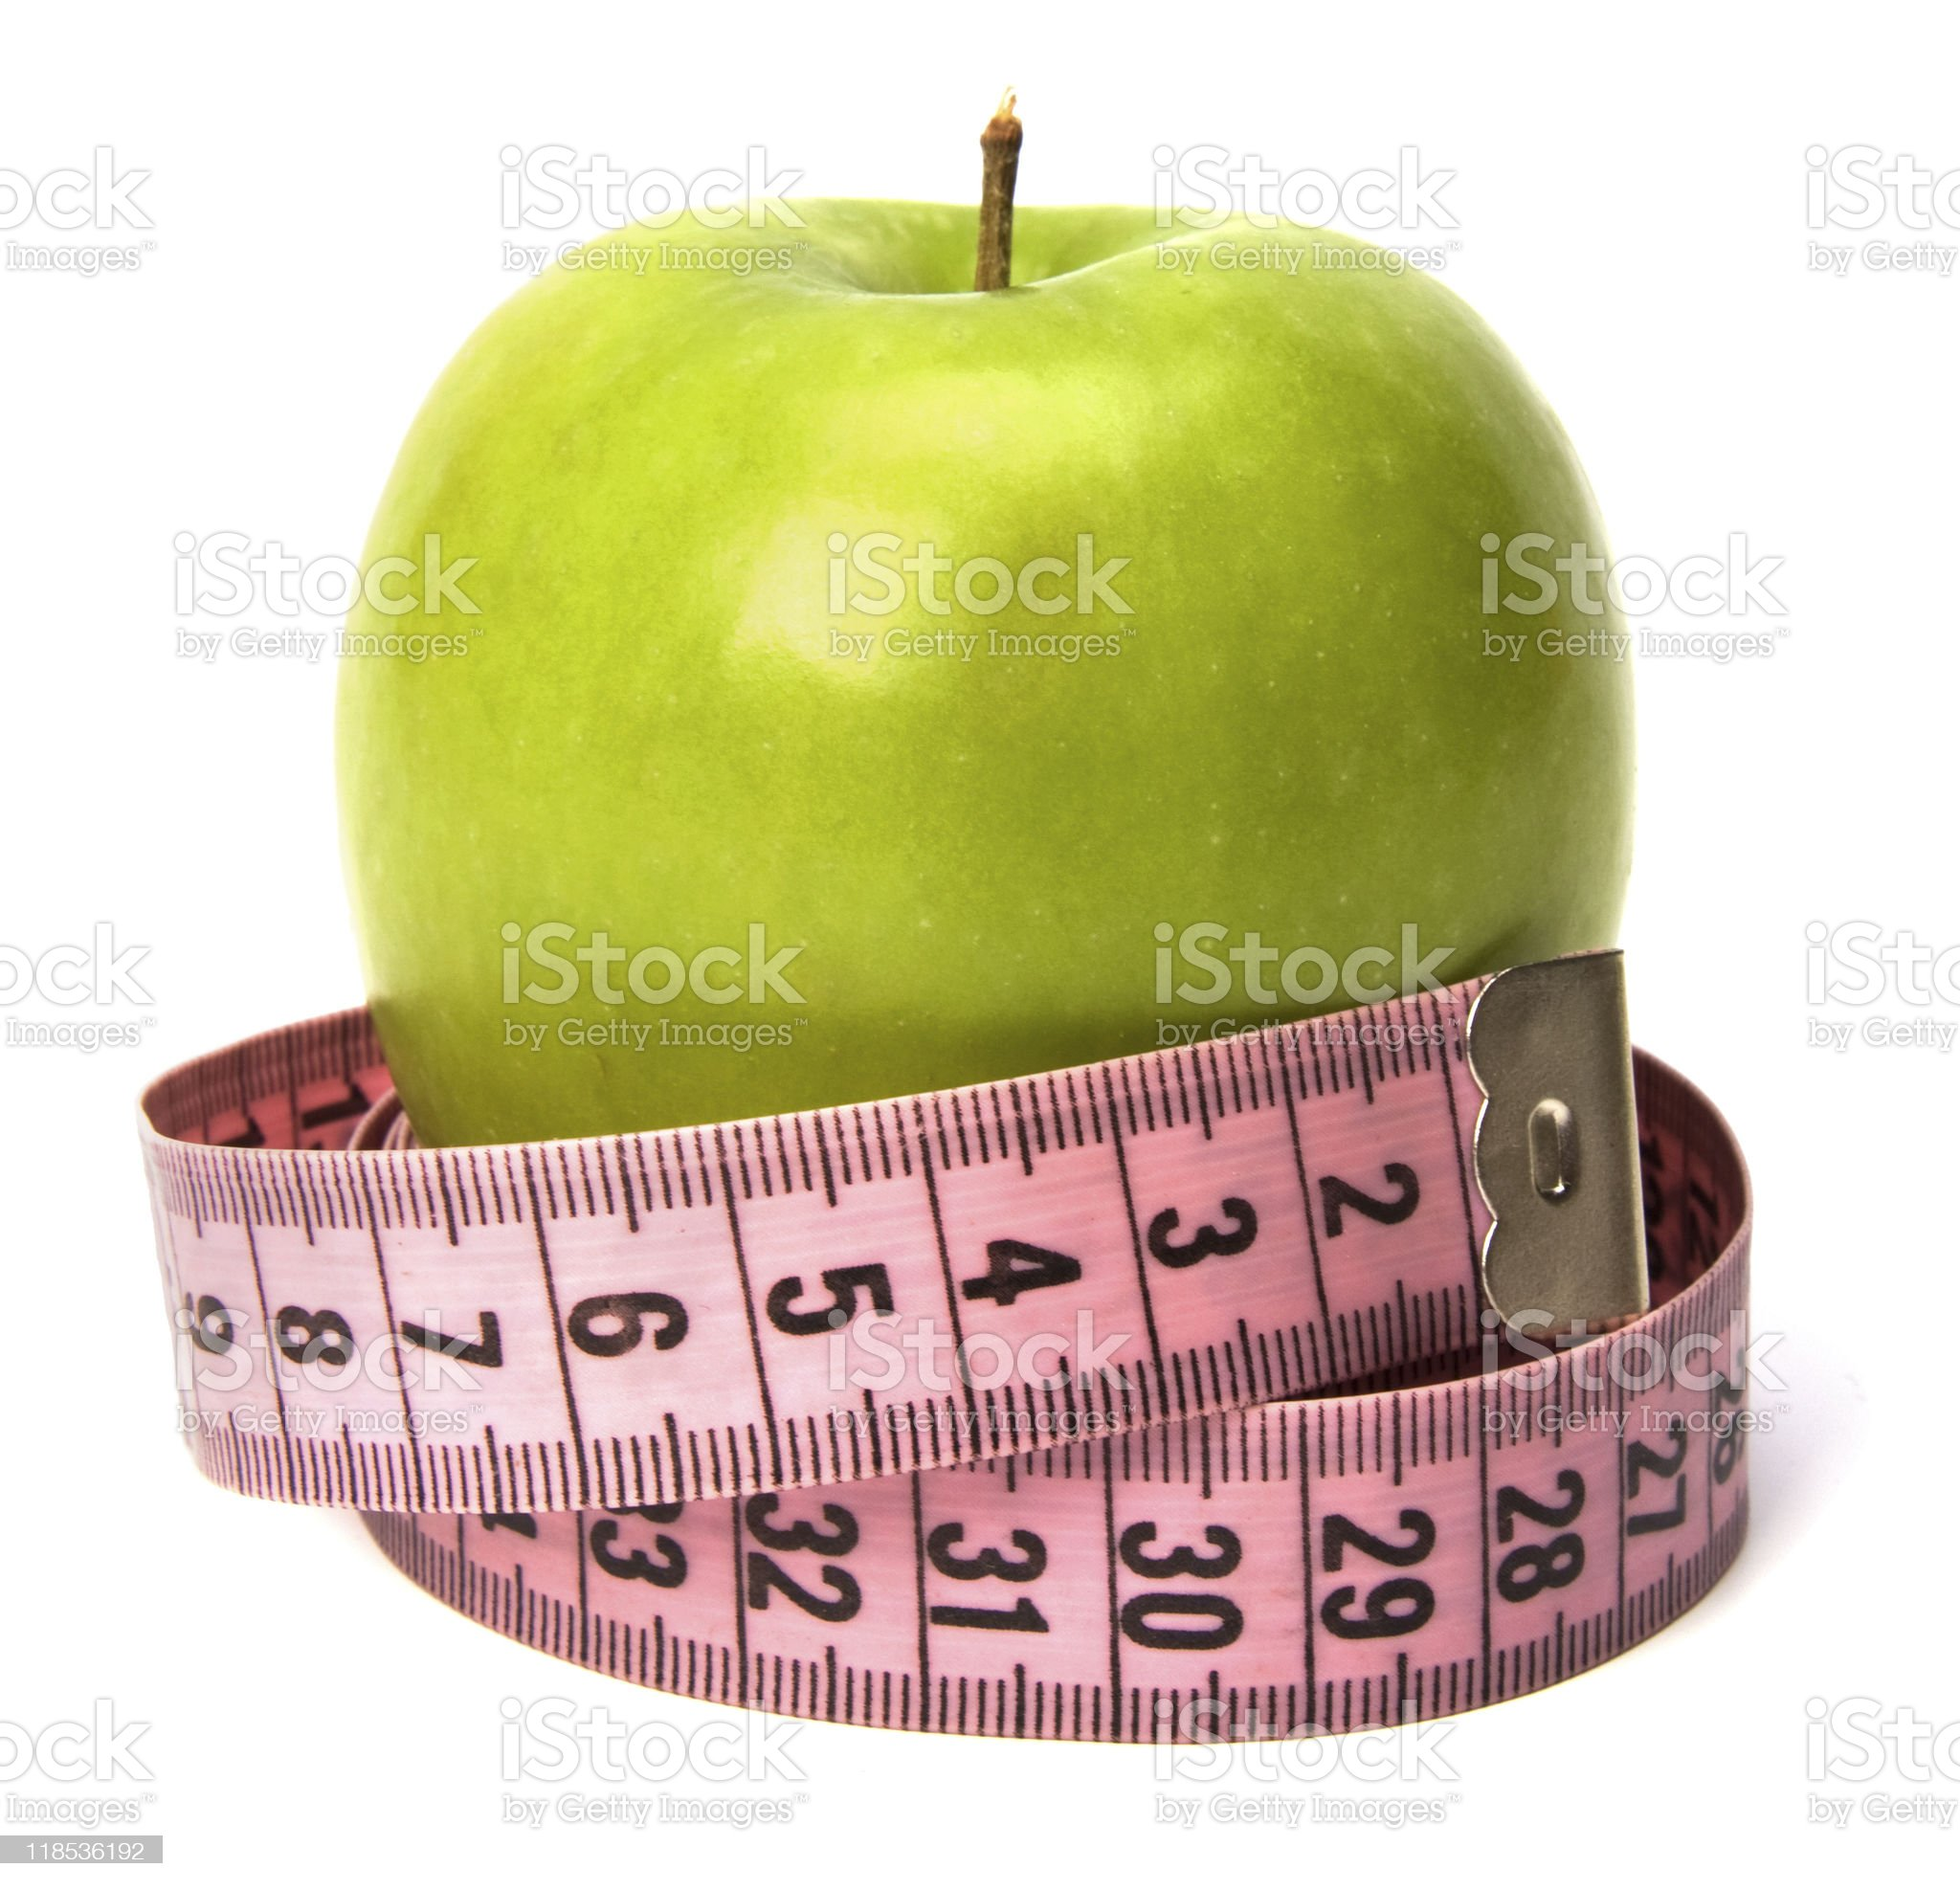 tape measure wrapped around the green apple royalty-free stock photo